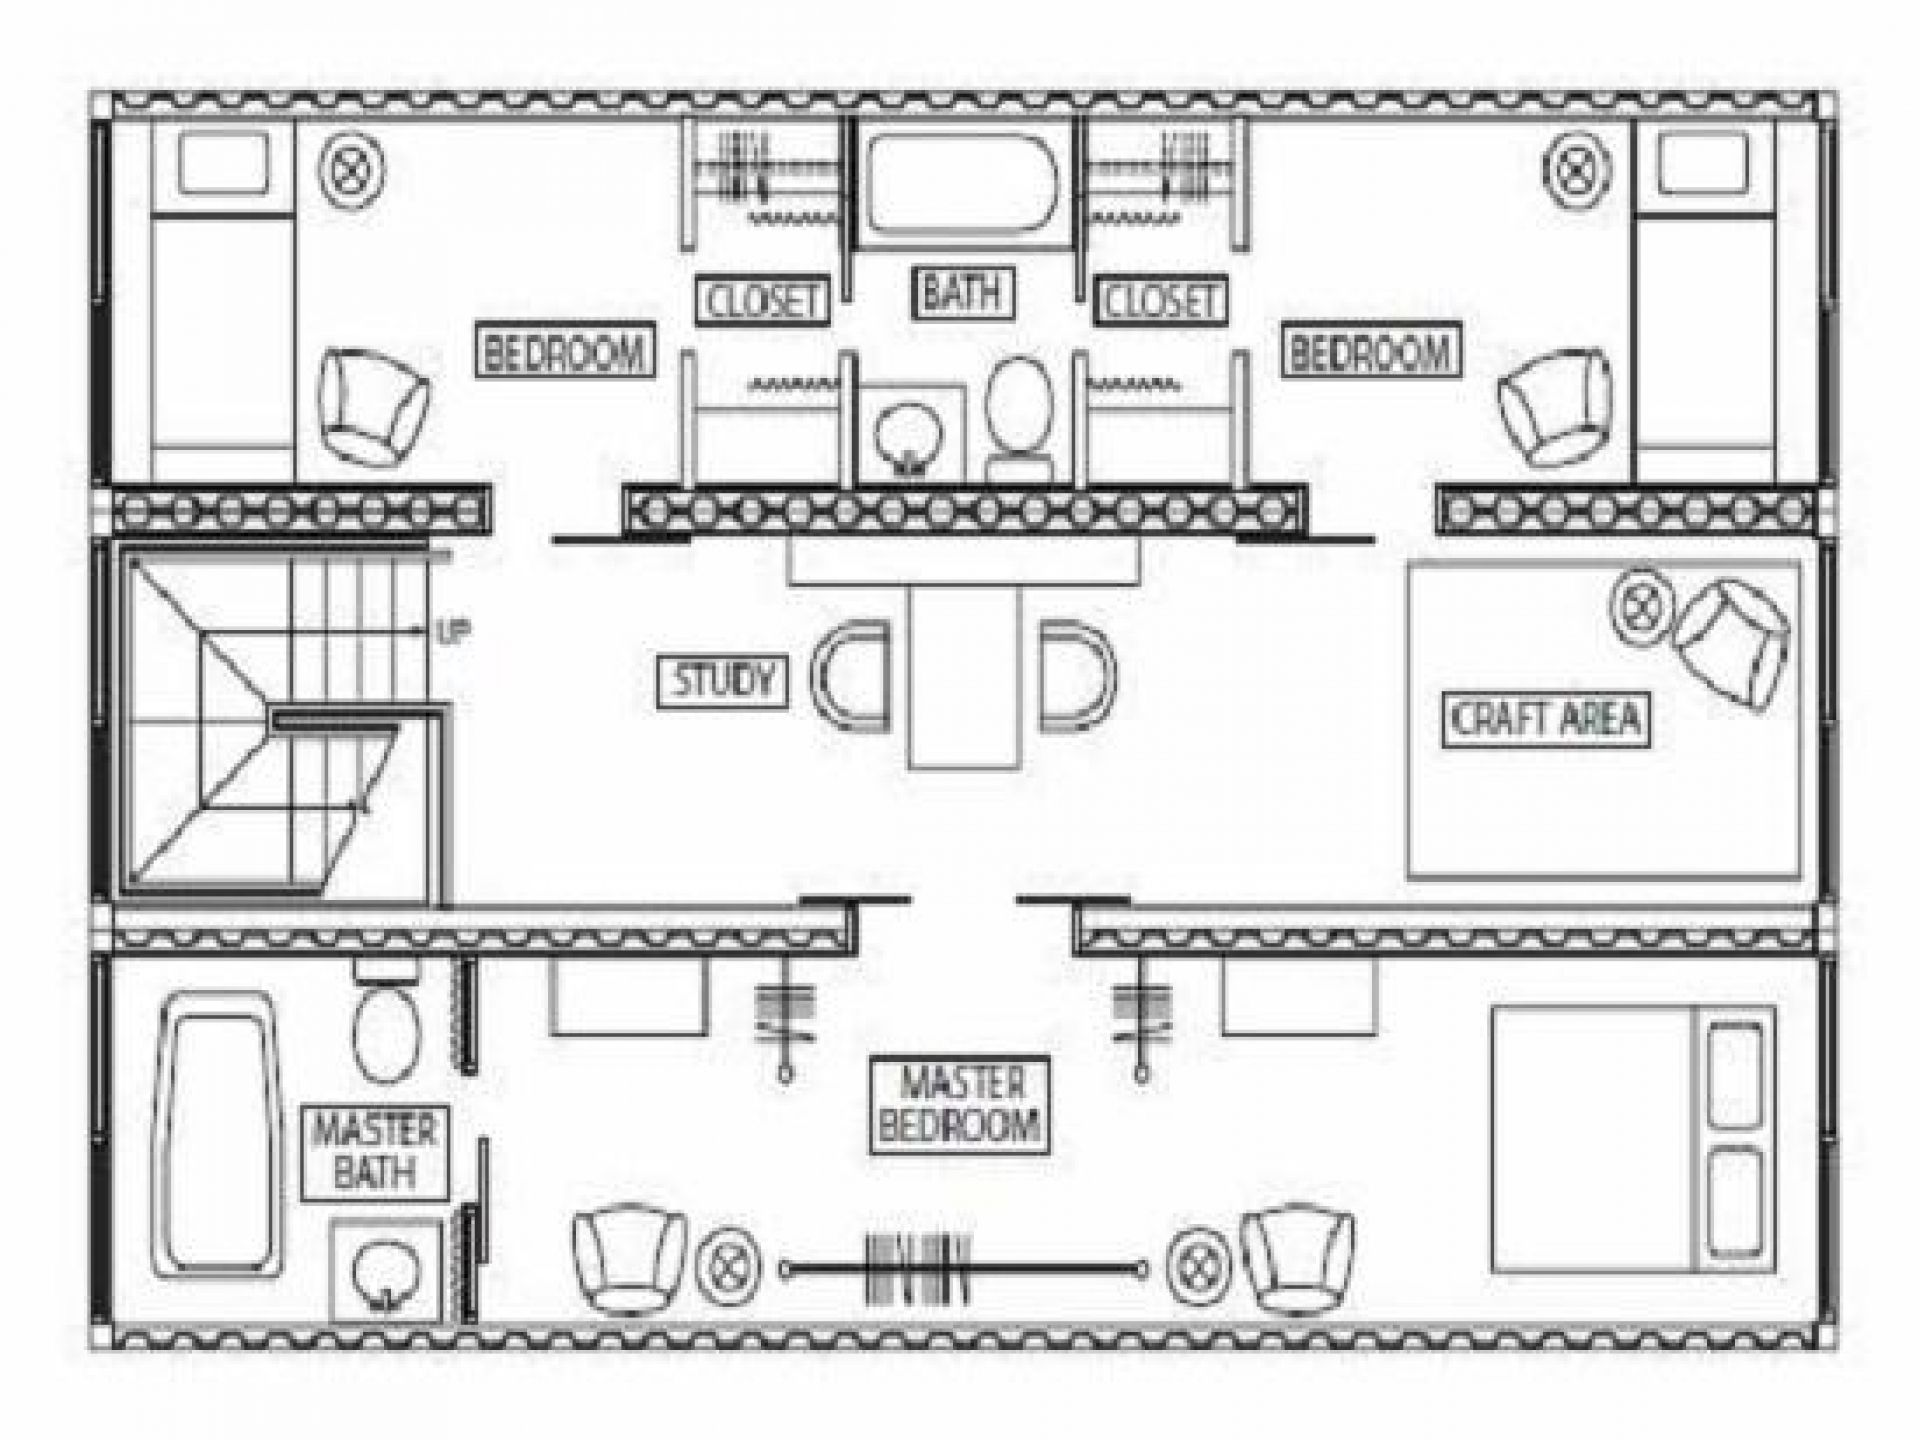 Amazing Shipping Container Homes Plans 3 Shipping Container Home Floor Plans Plans Maison Container Plans De Maison Conteneur Maison Container